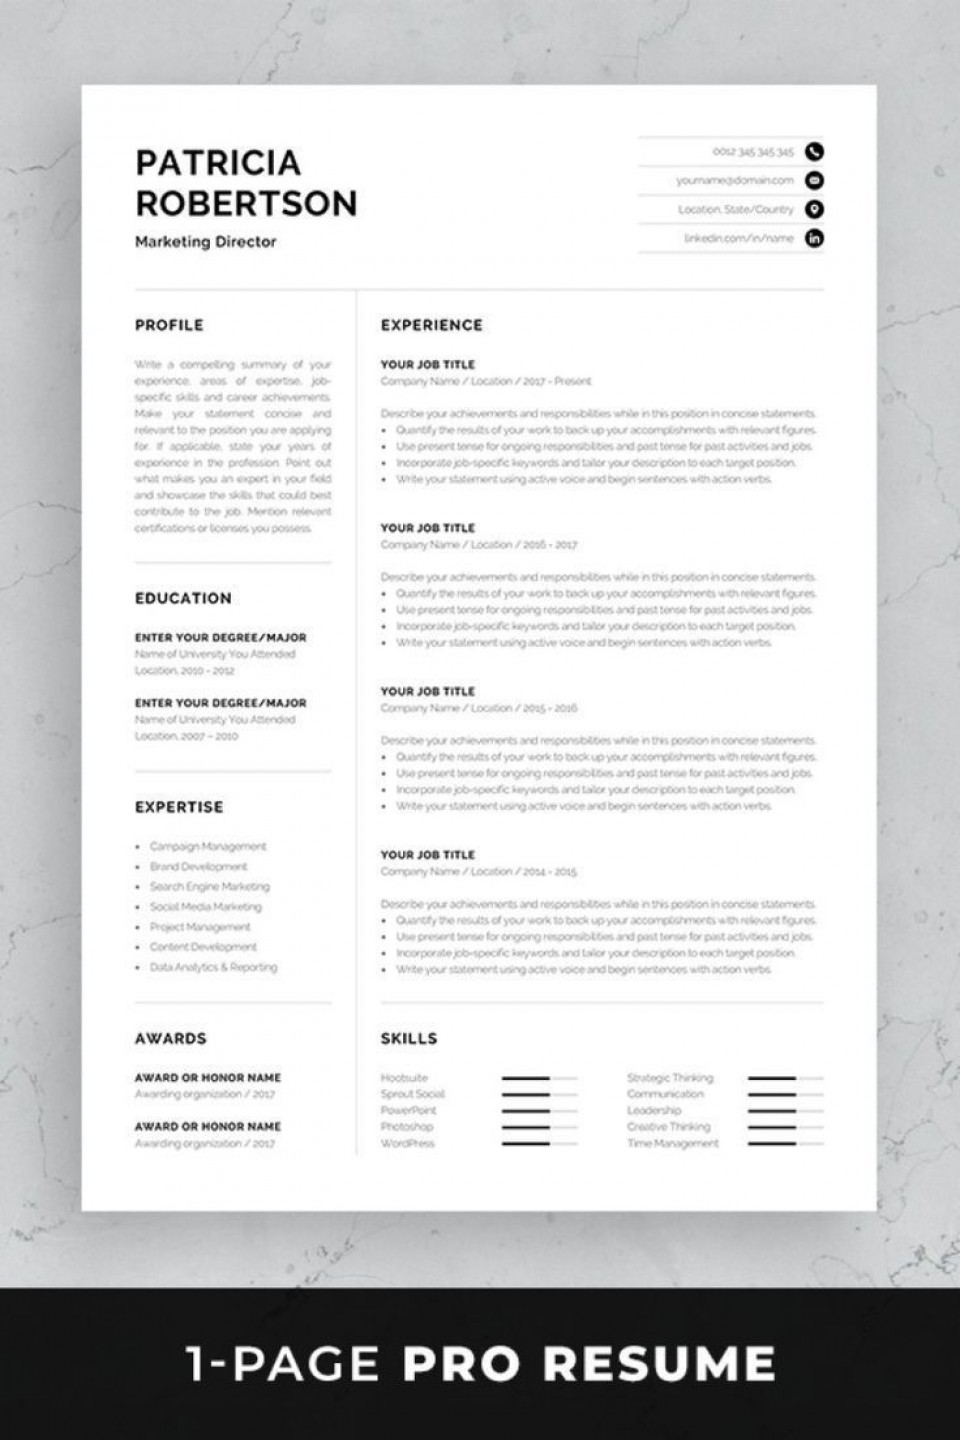 002 Impressive One Page Resume Template Photo  Word Free For Fresher Ppt Download Html960